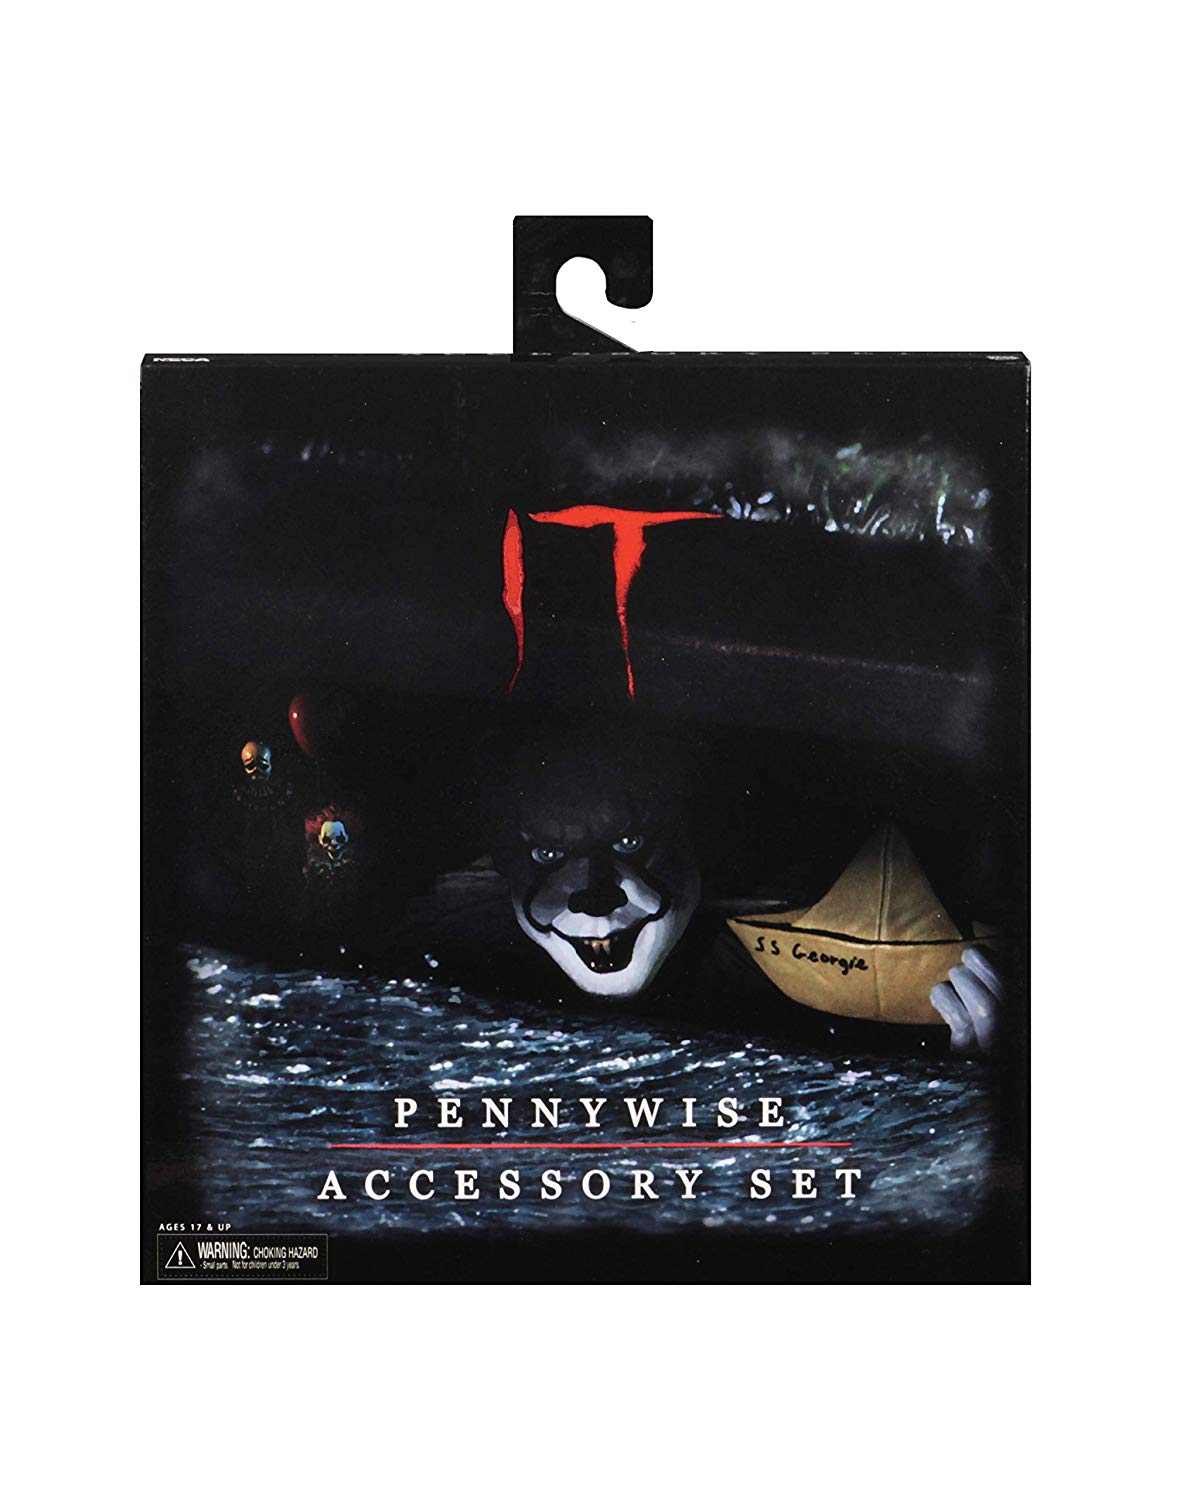 IT - Pennywise Accessory Pack - 2017 - Collectors Row Inc.